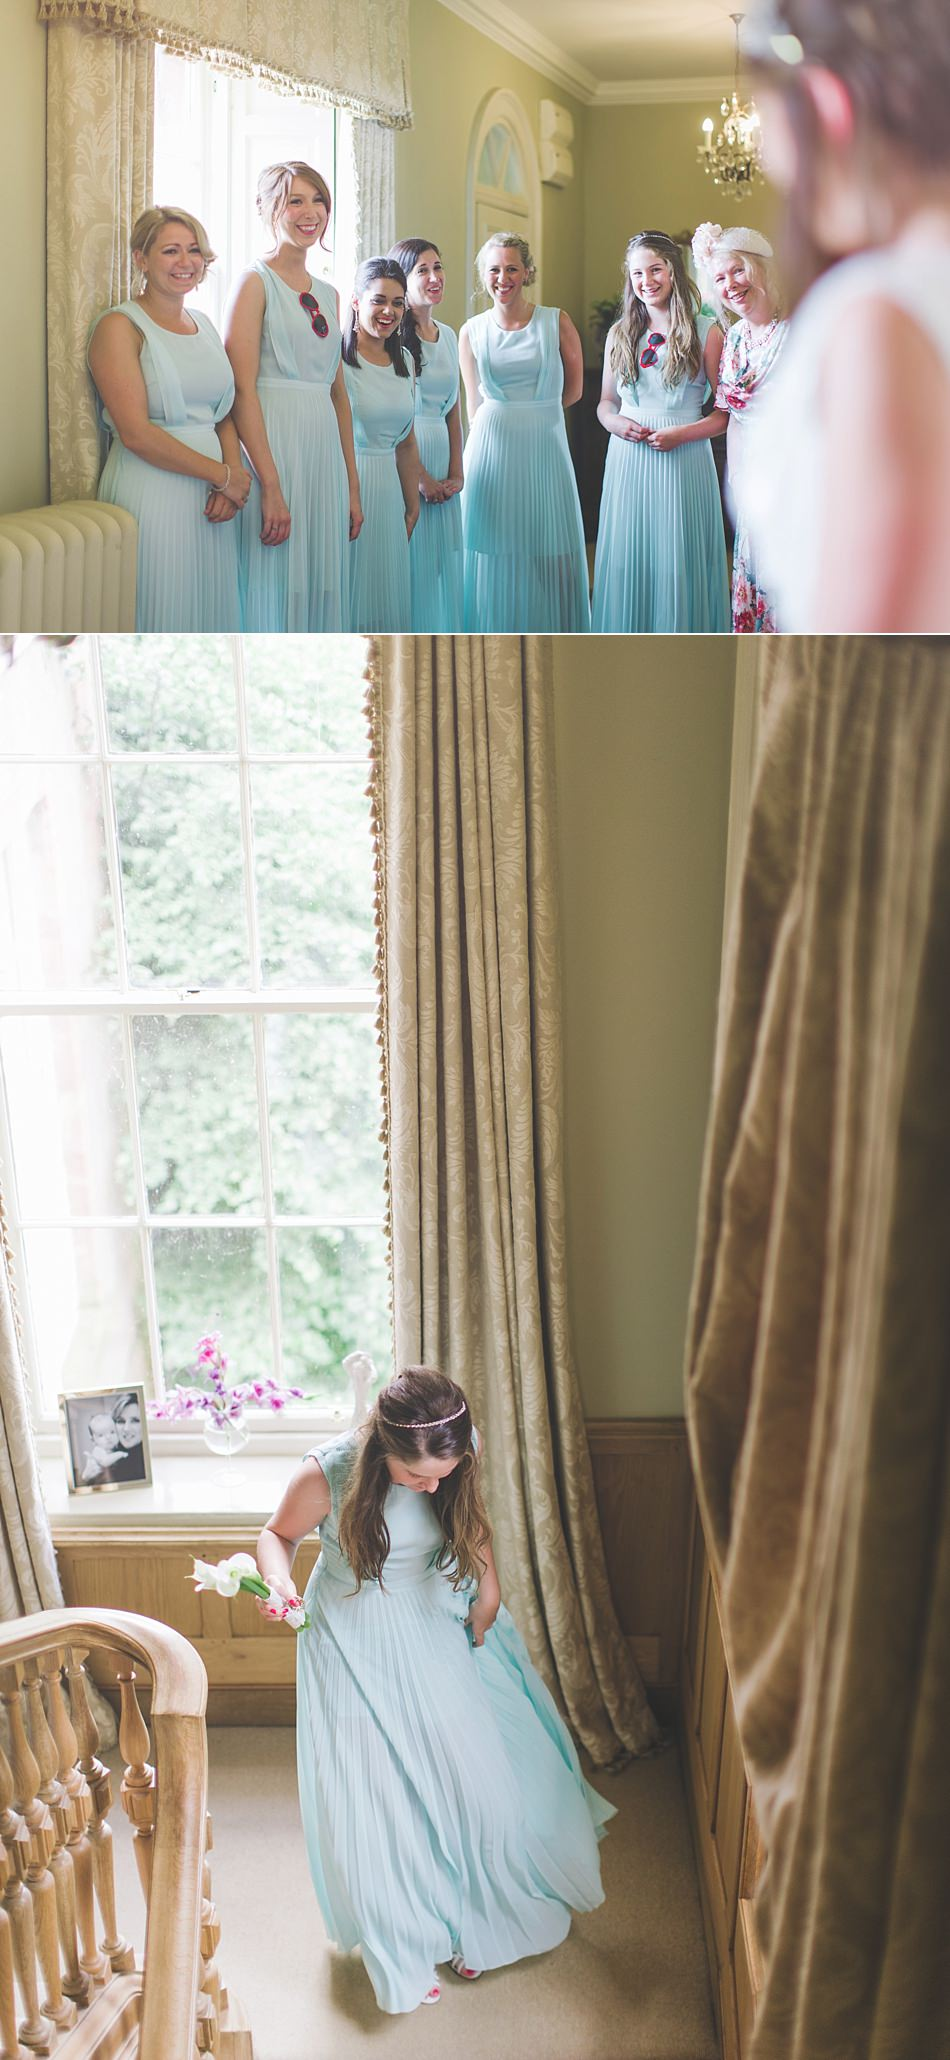 natural fine art wedding photographers scotland 7-4.jpg